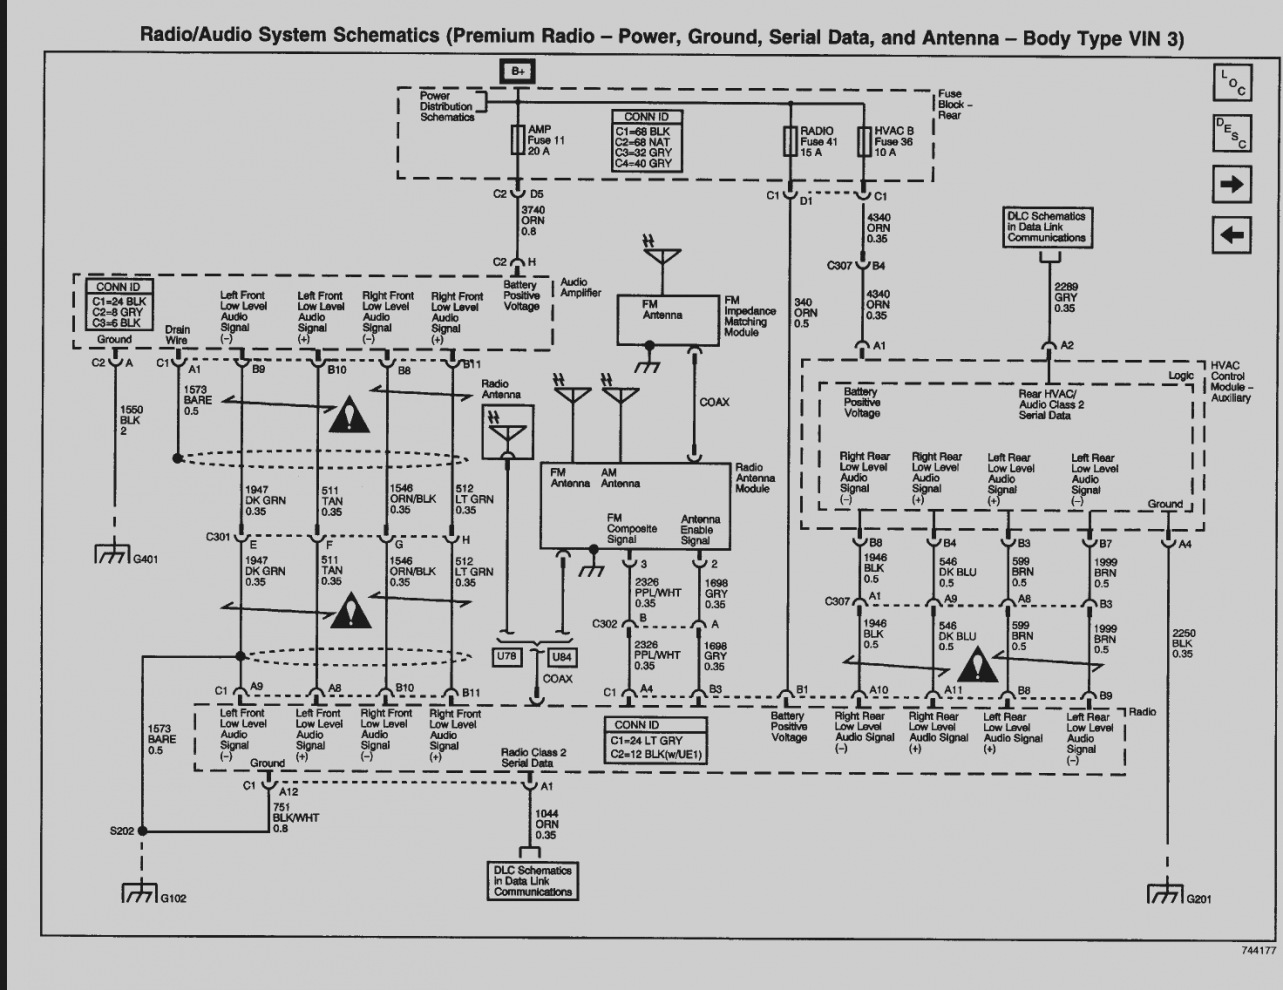 2005 gmc sierra radio wiring harness 2003 gmc yukon bose radio wiring diagram | free wiring diagram 2005 gmc sierra radio wiring diagram #2